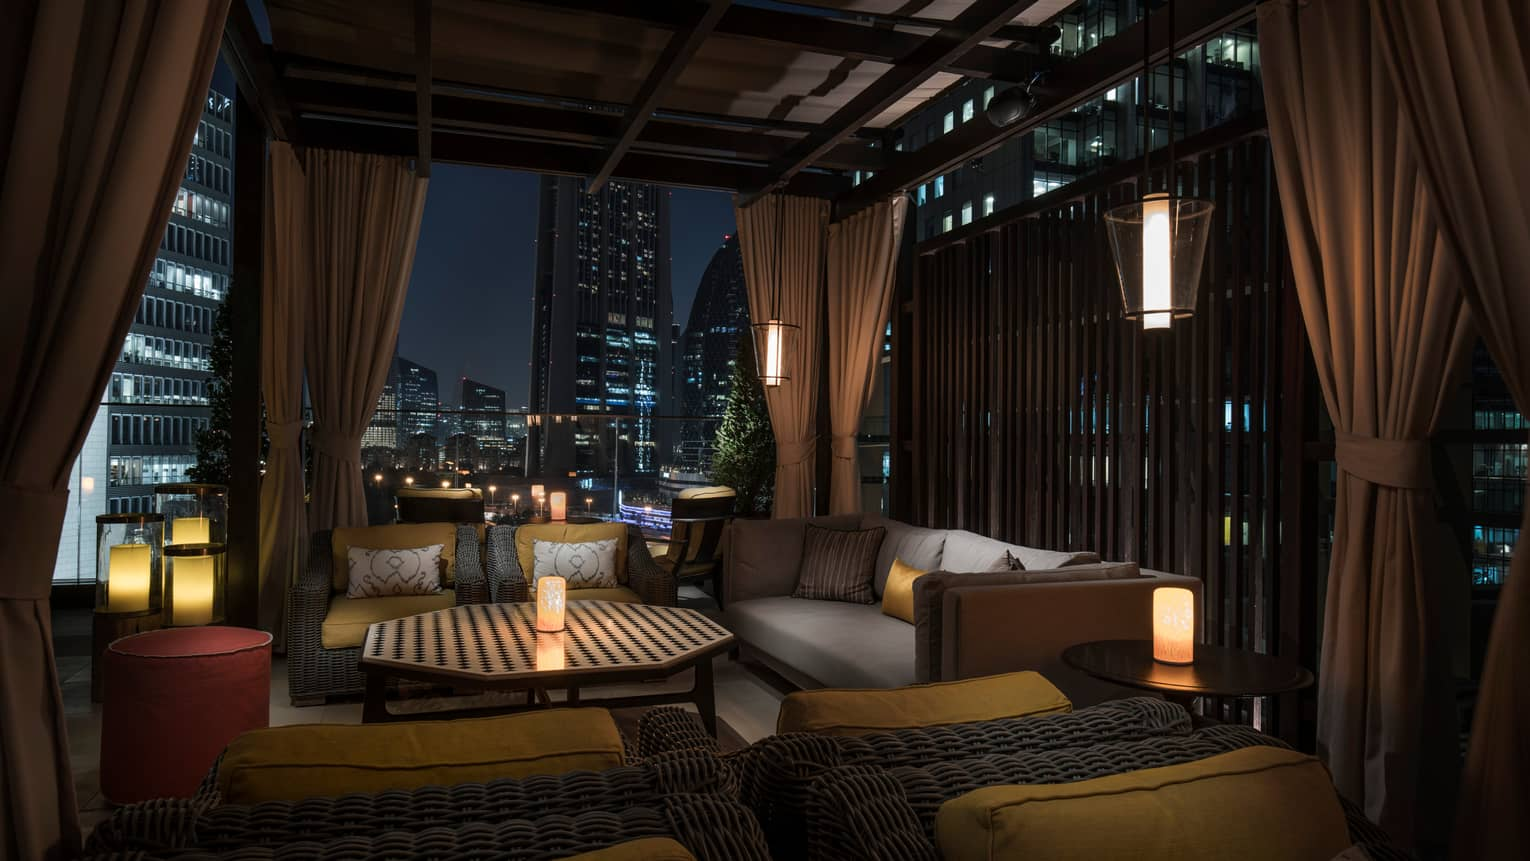 Outdoor patio lounge area at night with candles, plush cushions, wood roof